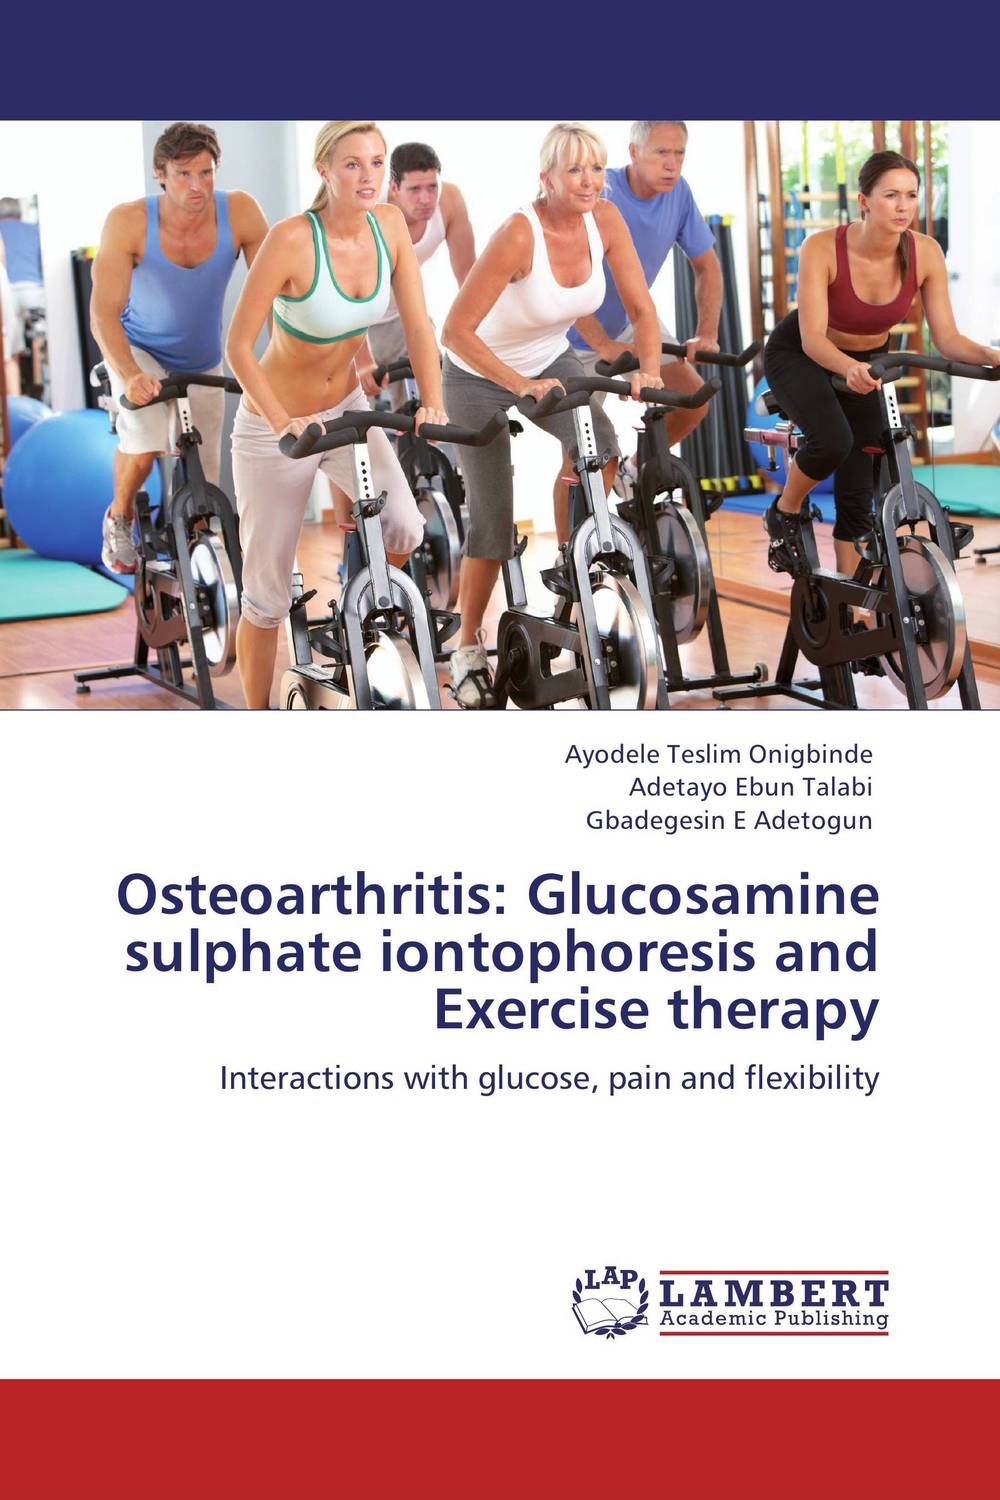 Osteoarthritis: Glucosamine sulphate iontophoresis and Exercise therapy набор topperr для ухода за холодильником 3 предмета